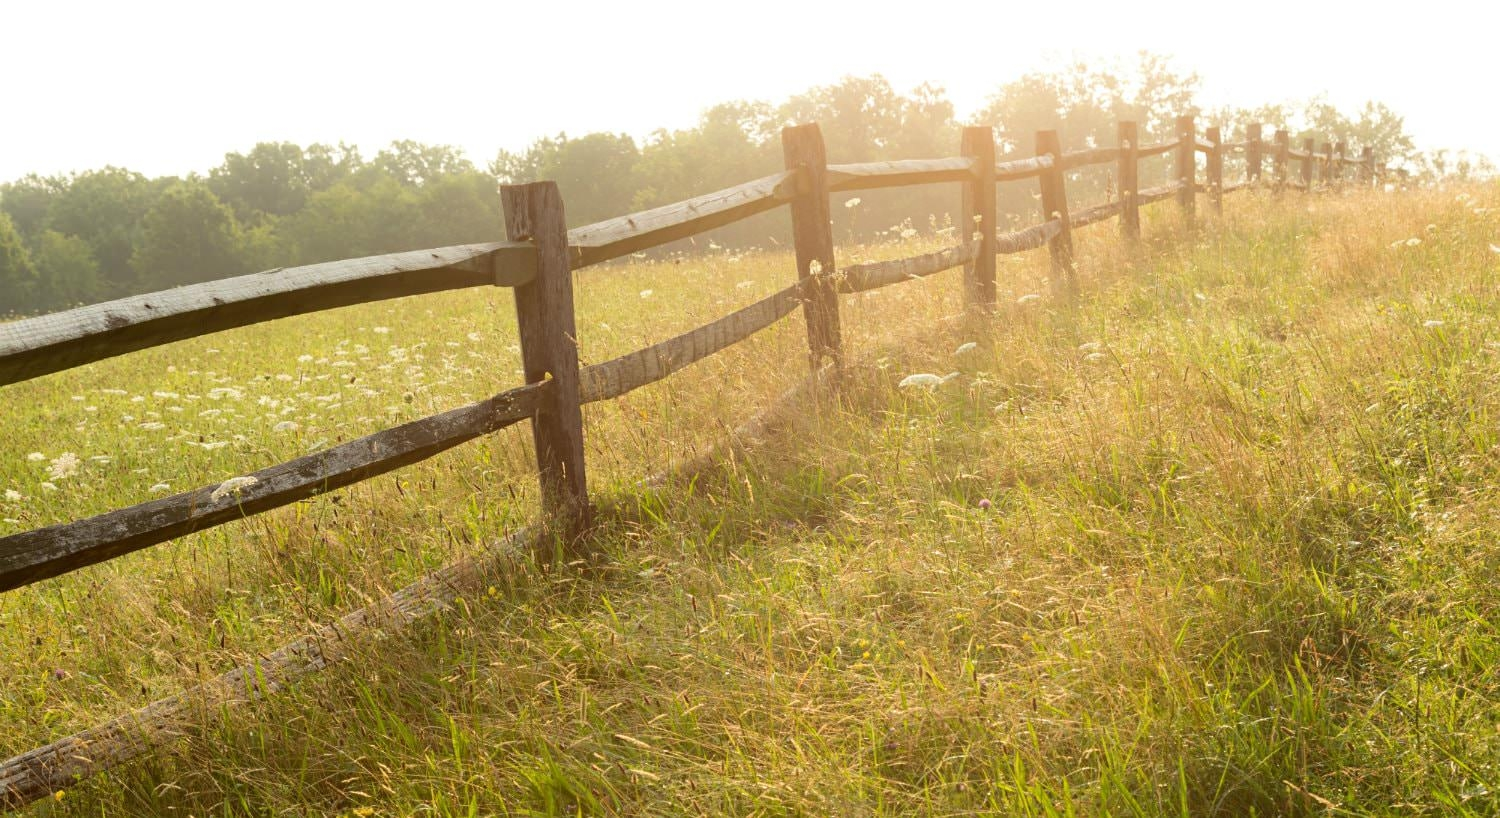 Close-up hazy view of brown slit-rail fence in a grassy meadow surrounded by green trees